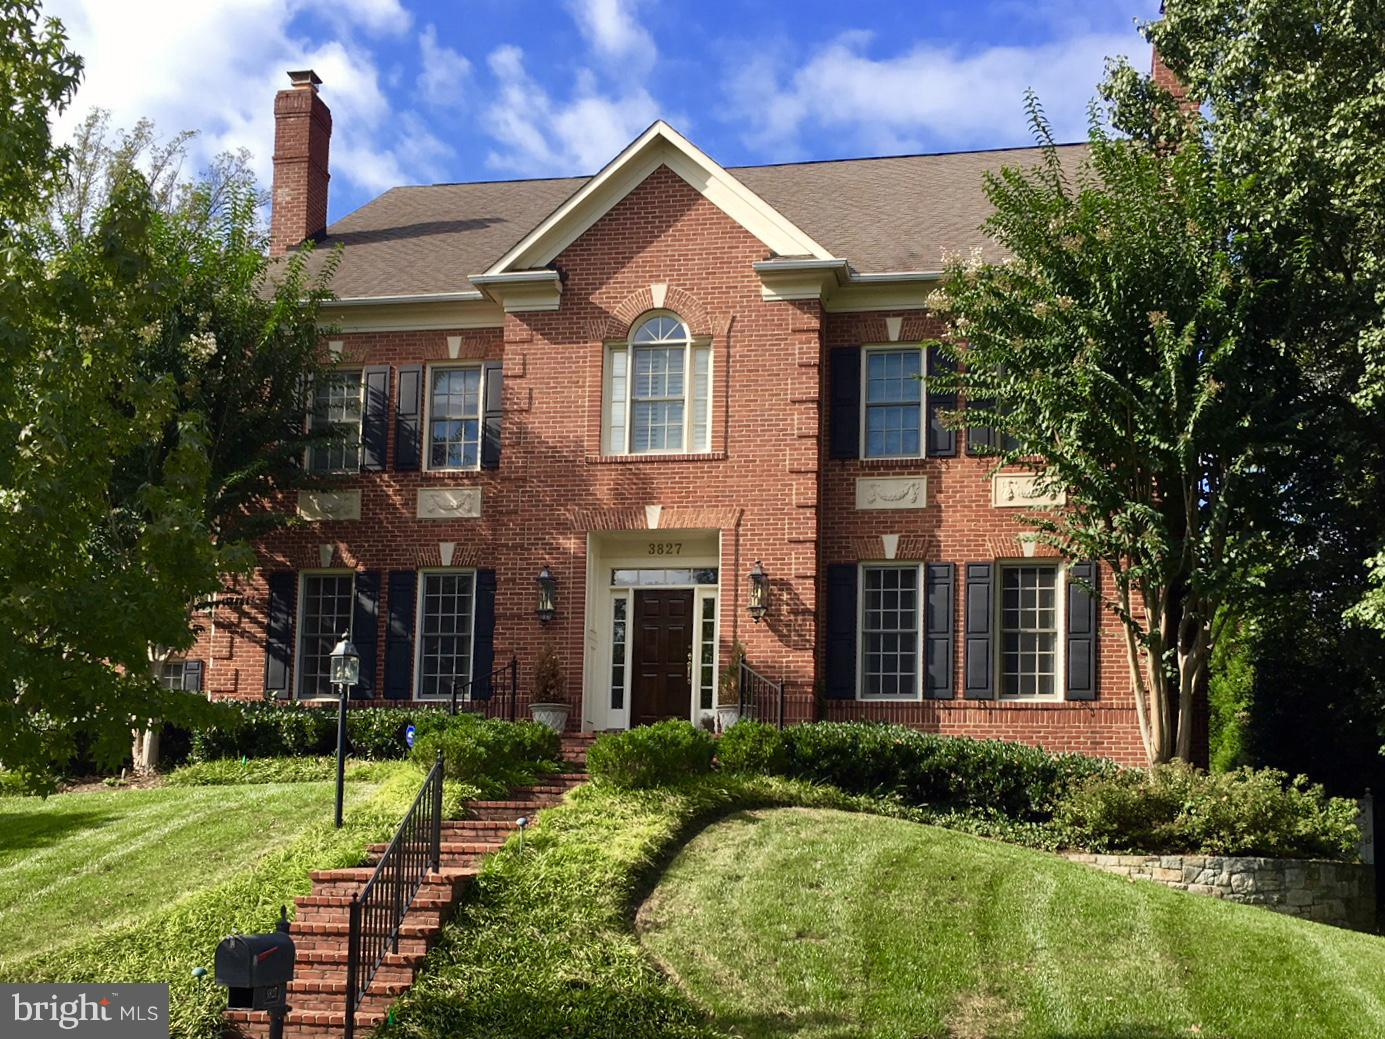 3827 VILLAGE PARK DRIVE, CHEVY CHASE, MD 20815